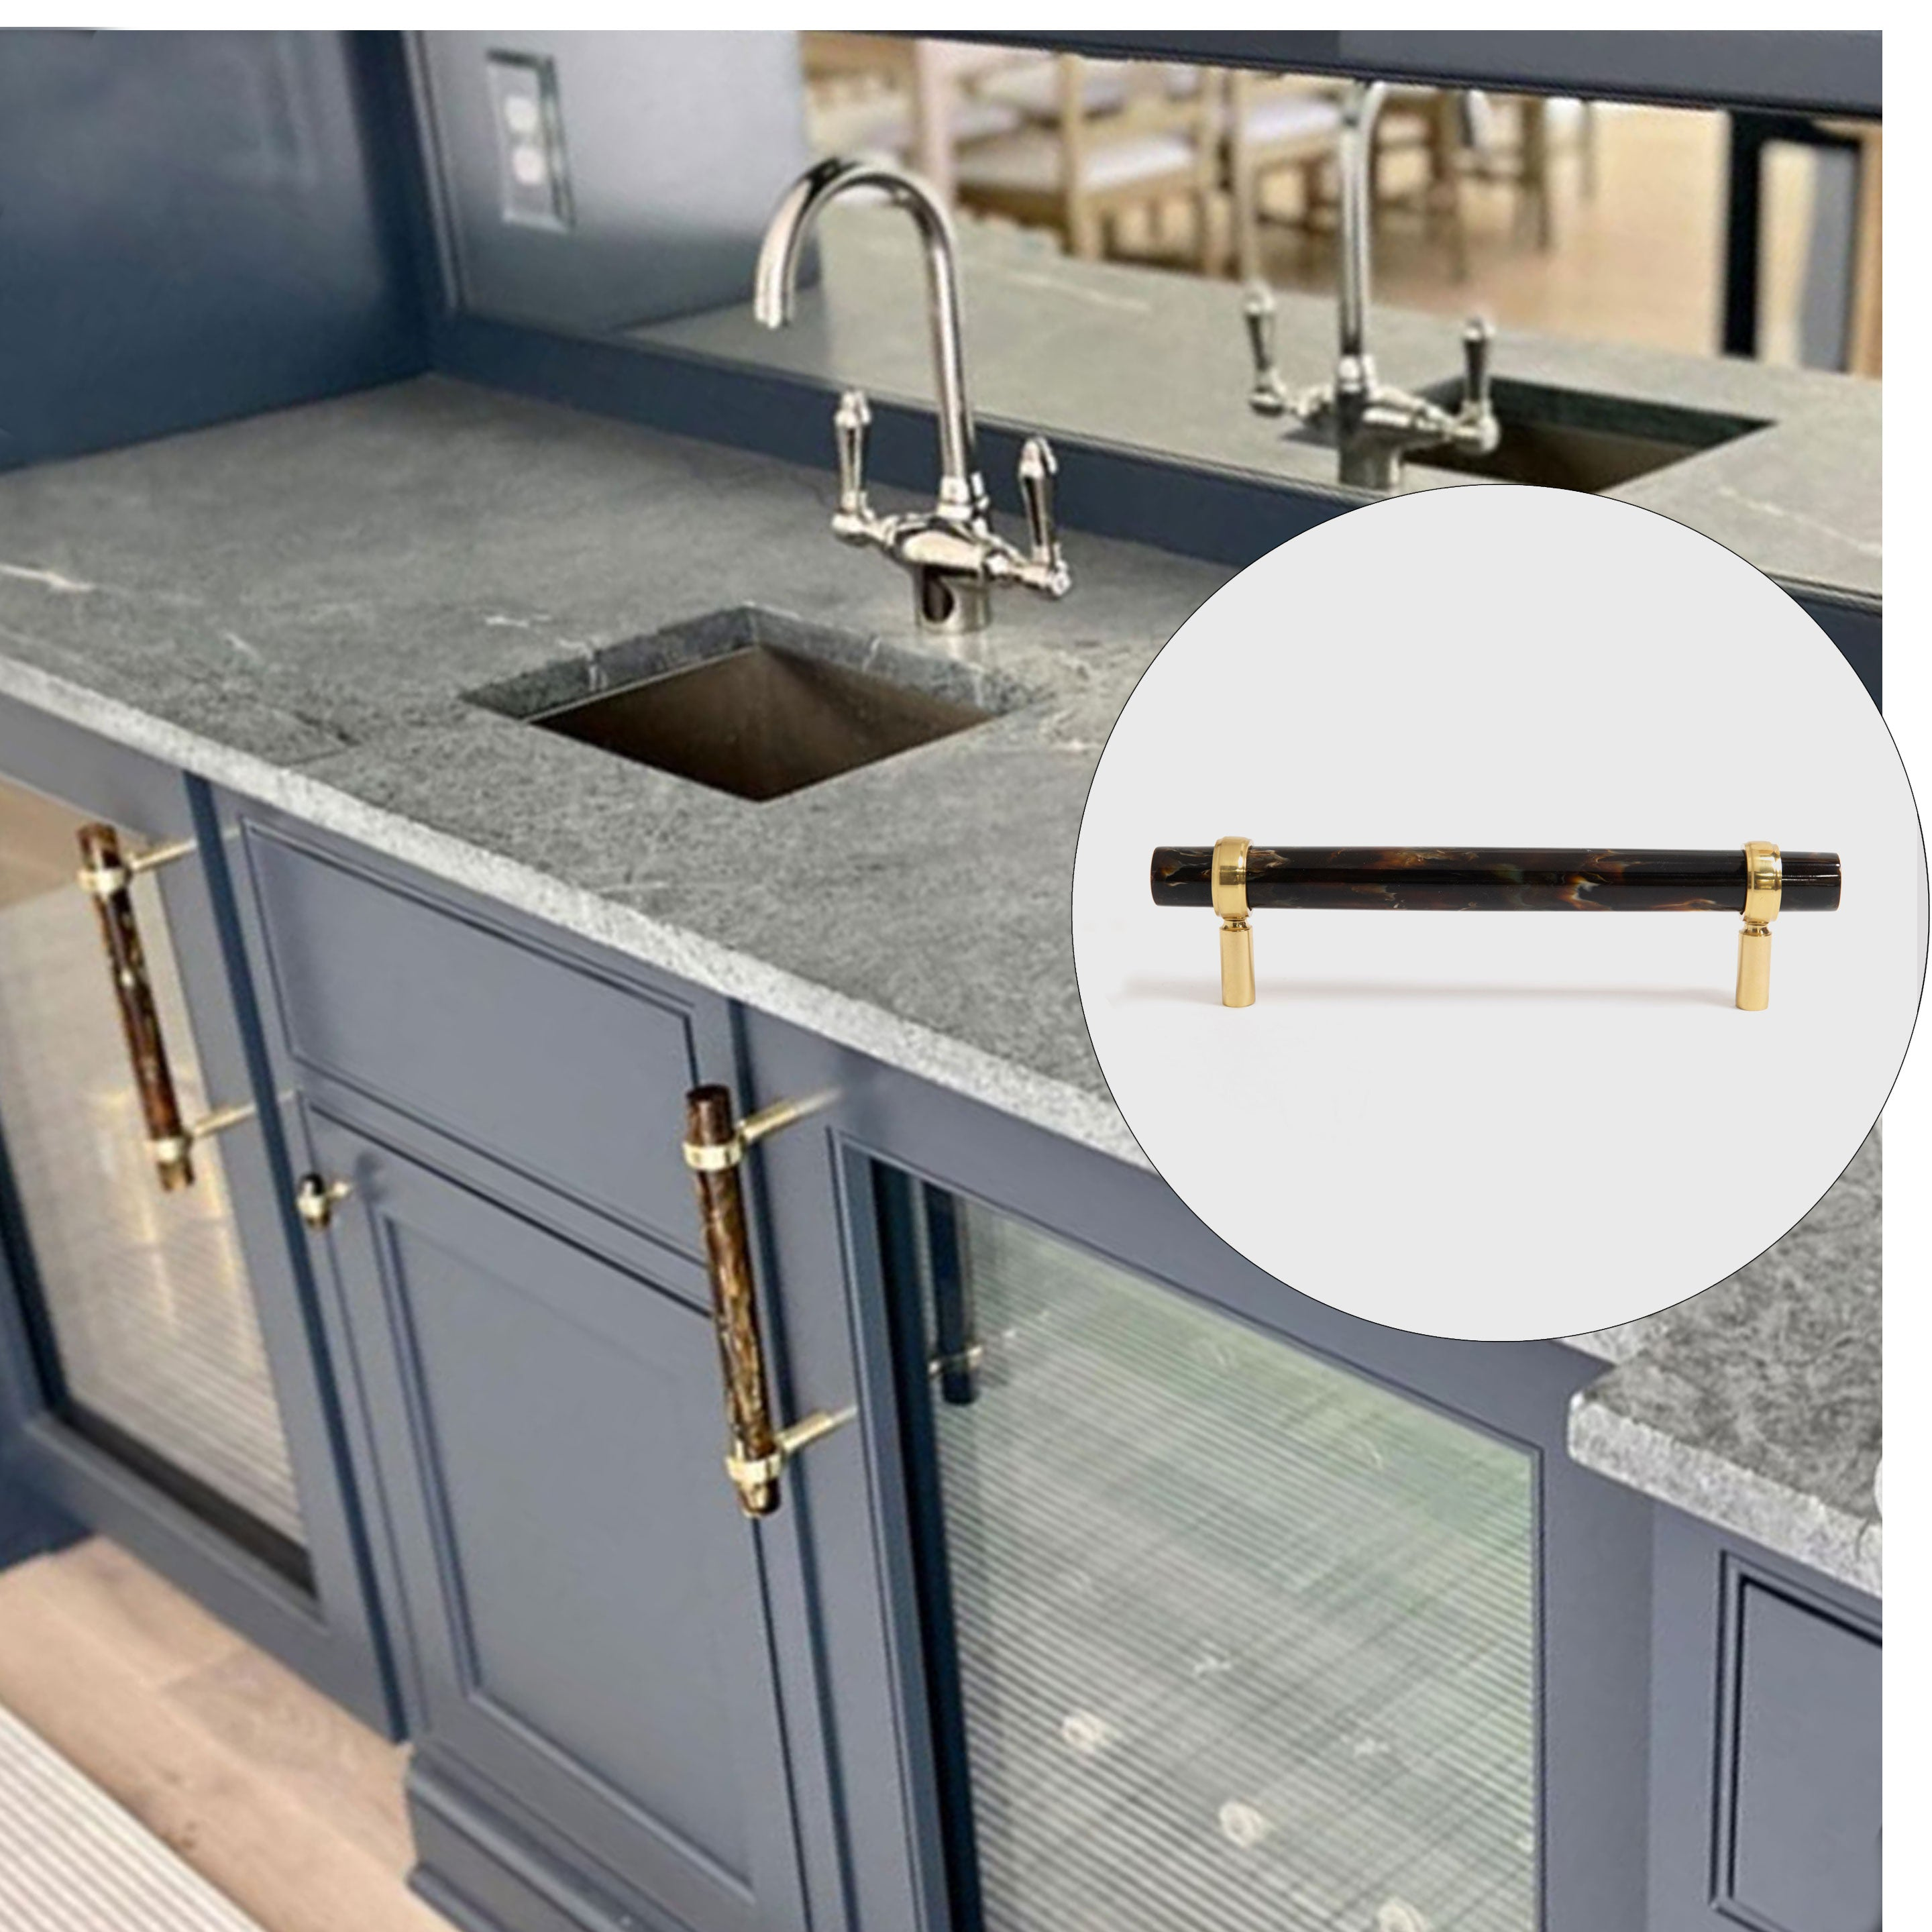 Bathroom Design with Star Backplate in Cream & Austin Knobs in Polished Nickel